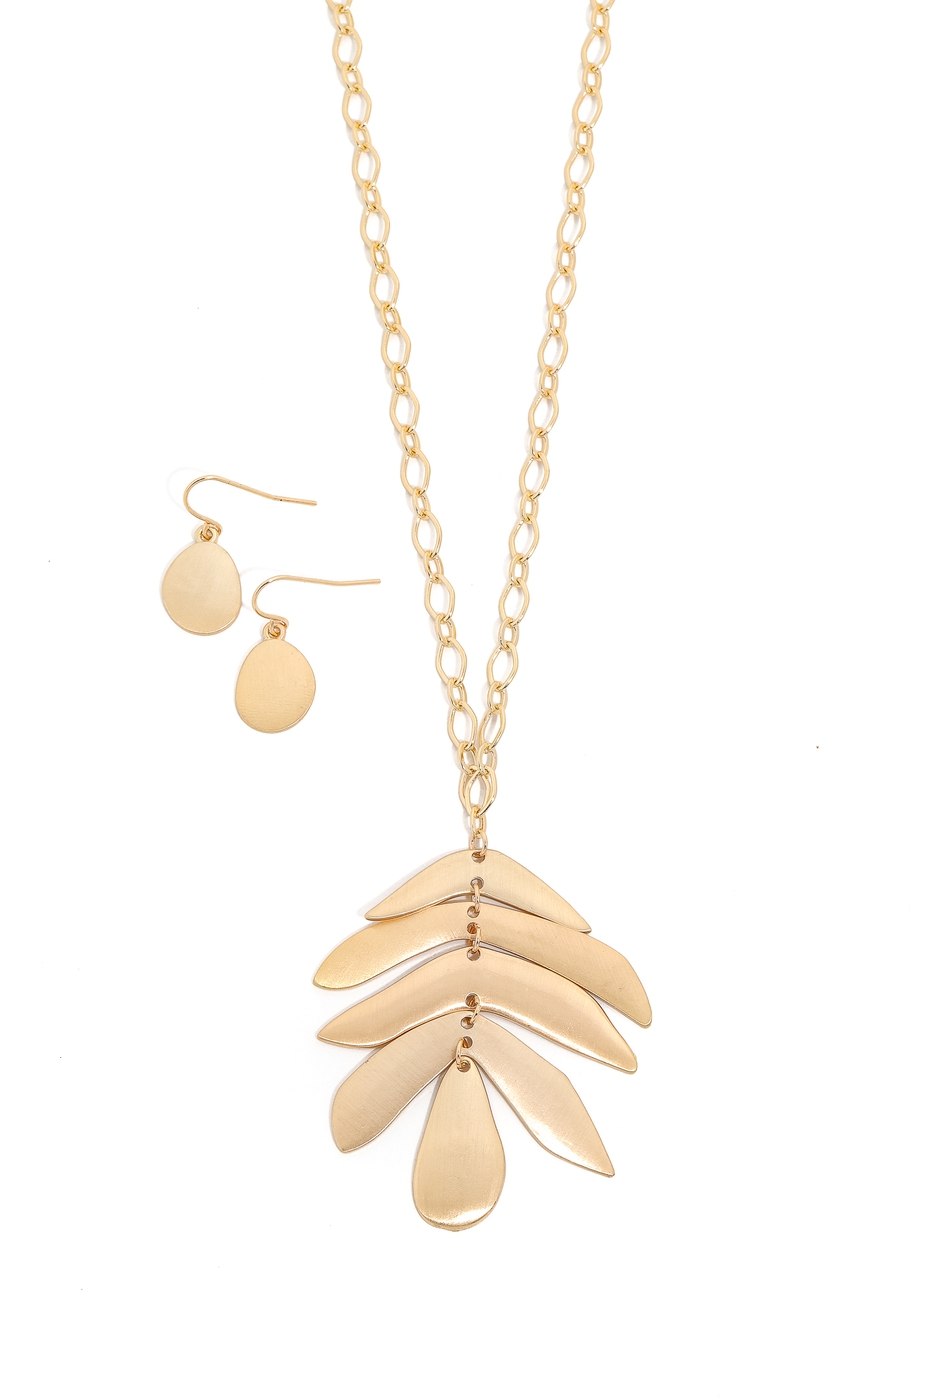 Metallic Tiered Leaf Charm Necklace - orangeshine.com